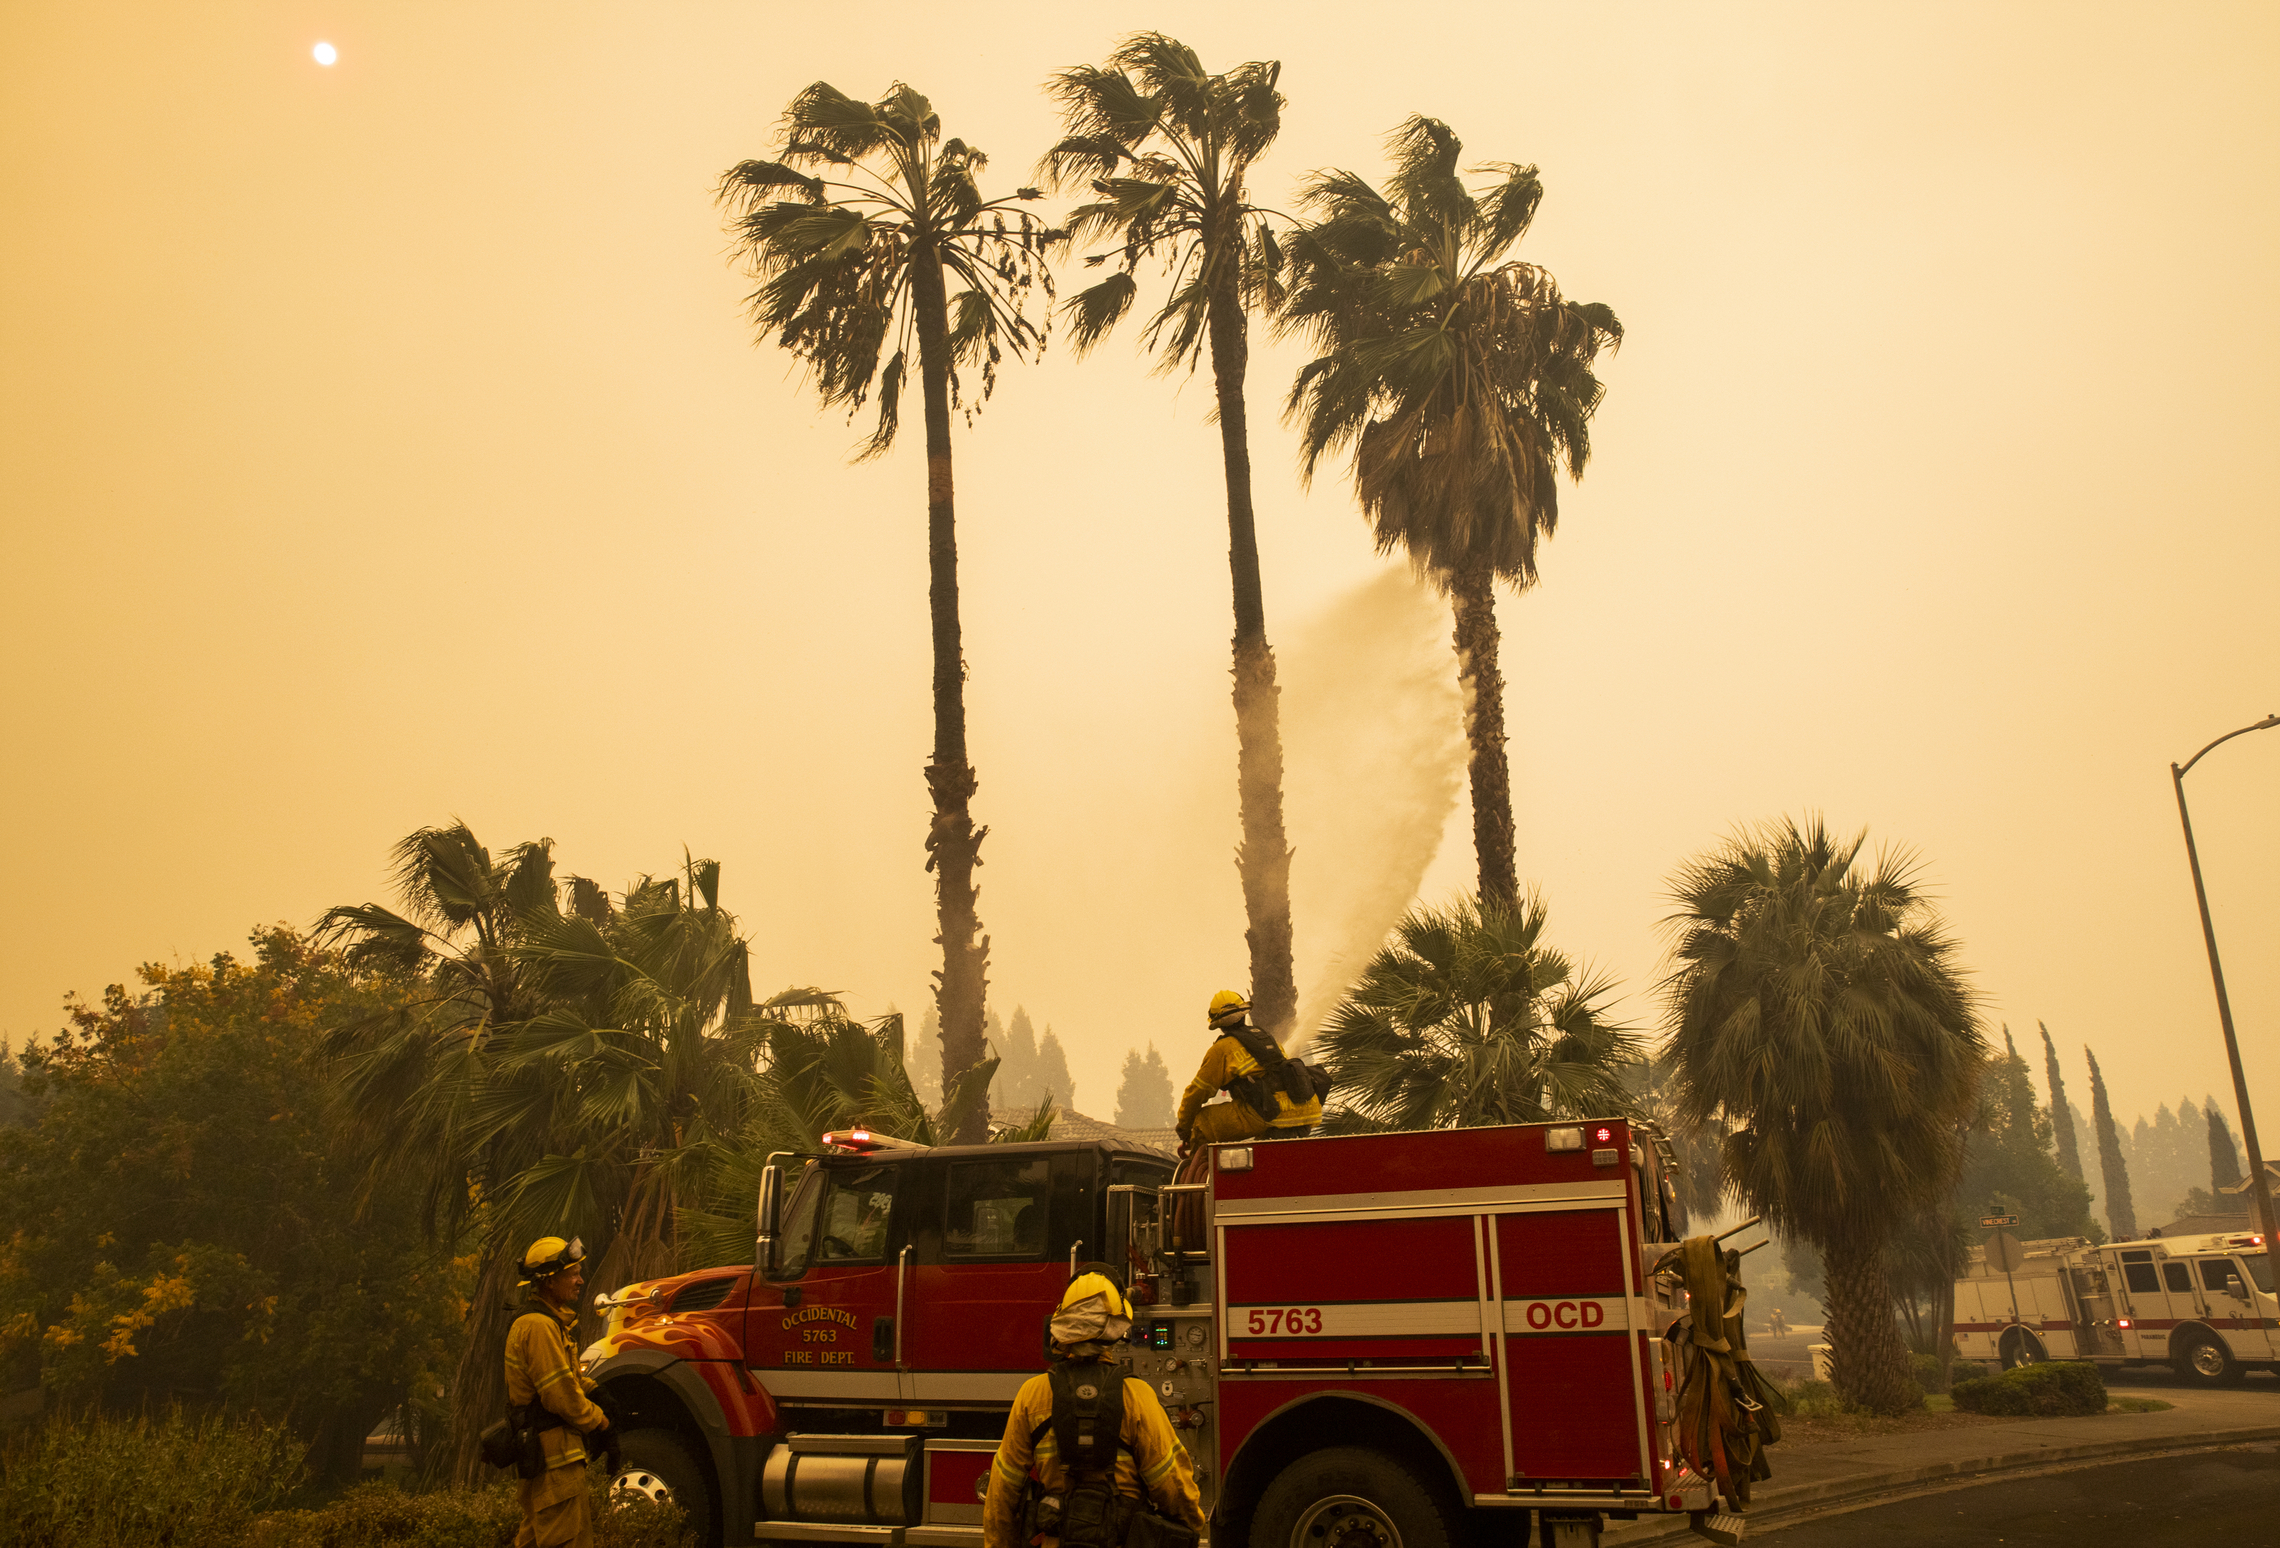 Don't lecture California about fires. Look at the state's climate action.